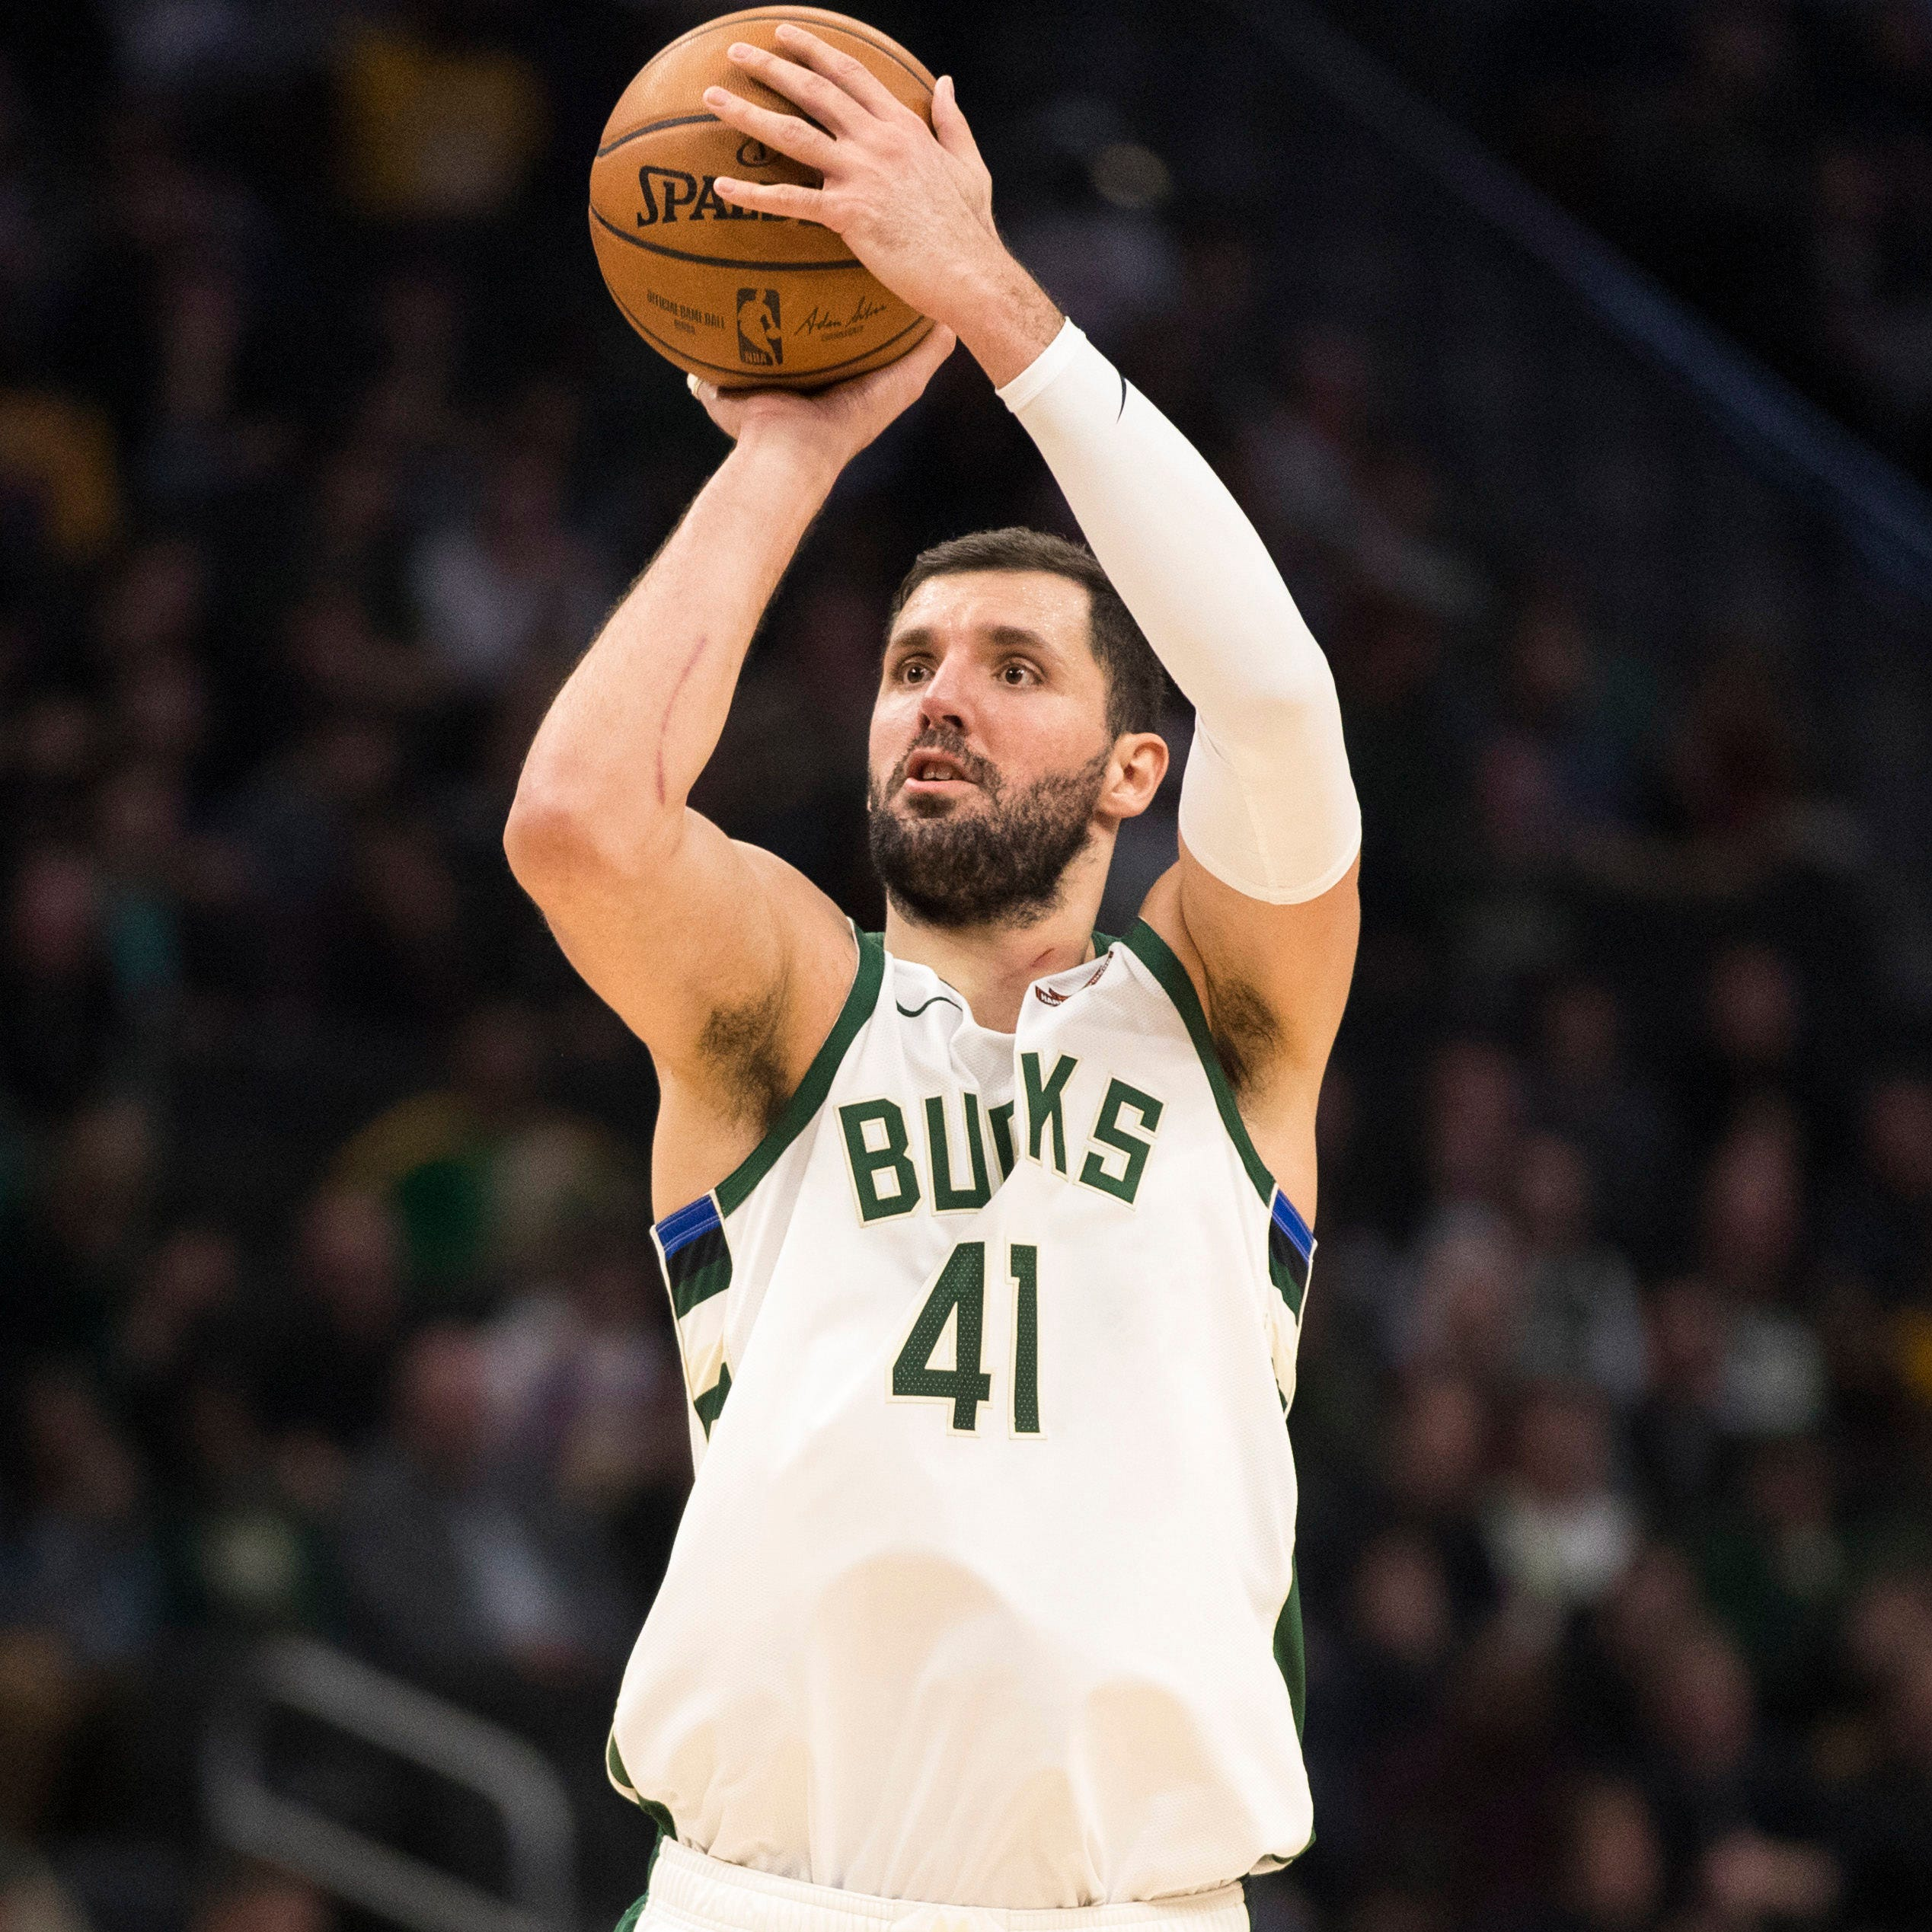 Nikola Mirotic joins the Bucks' long injury list with a sprained and fractured left thumb